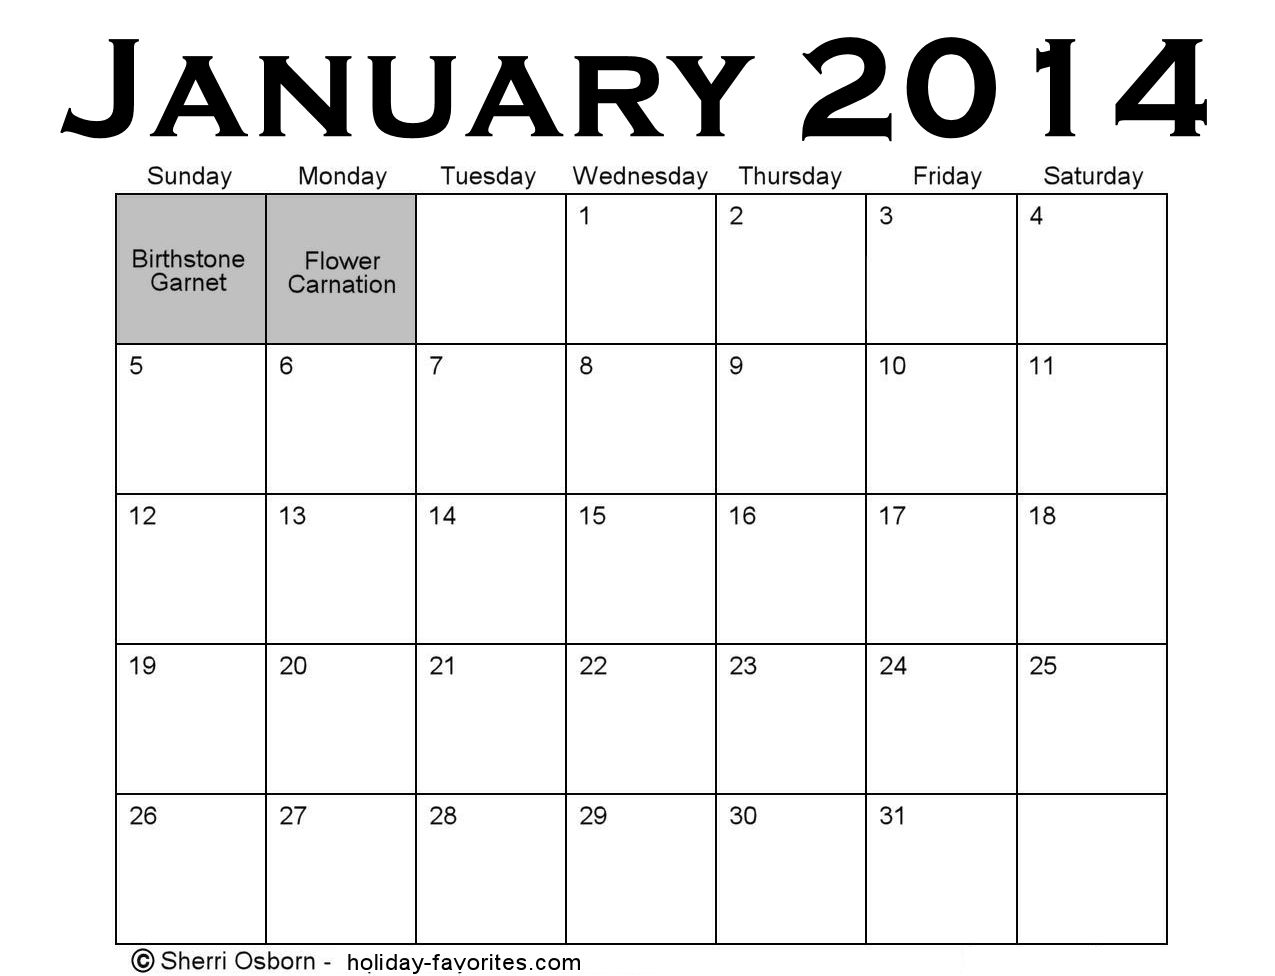 January 2014 Special Days to Celebrate